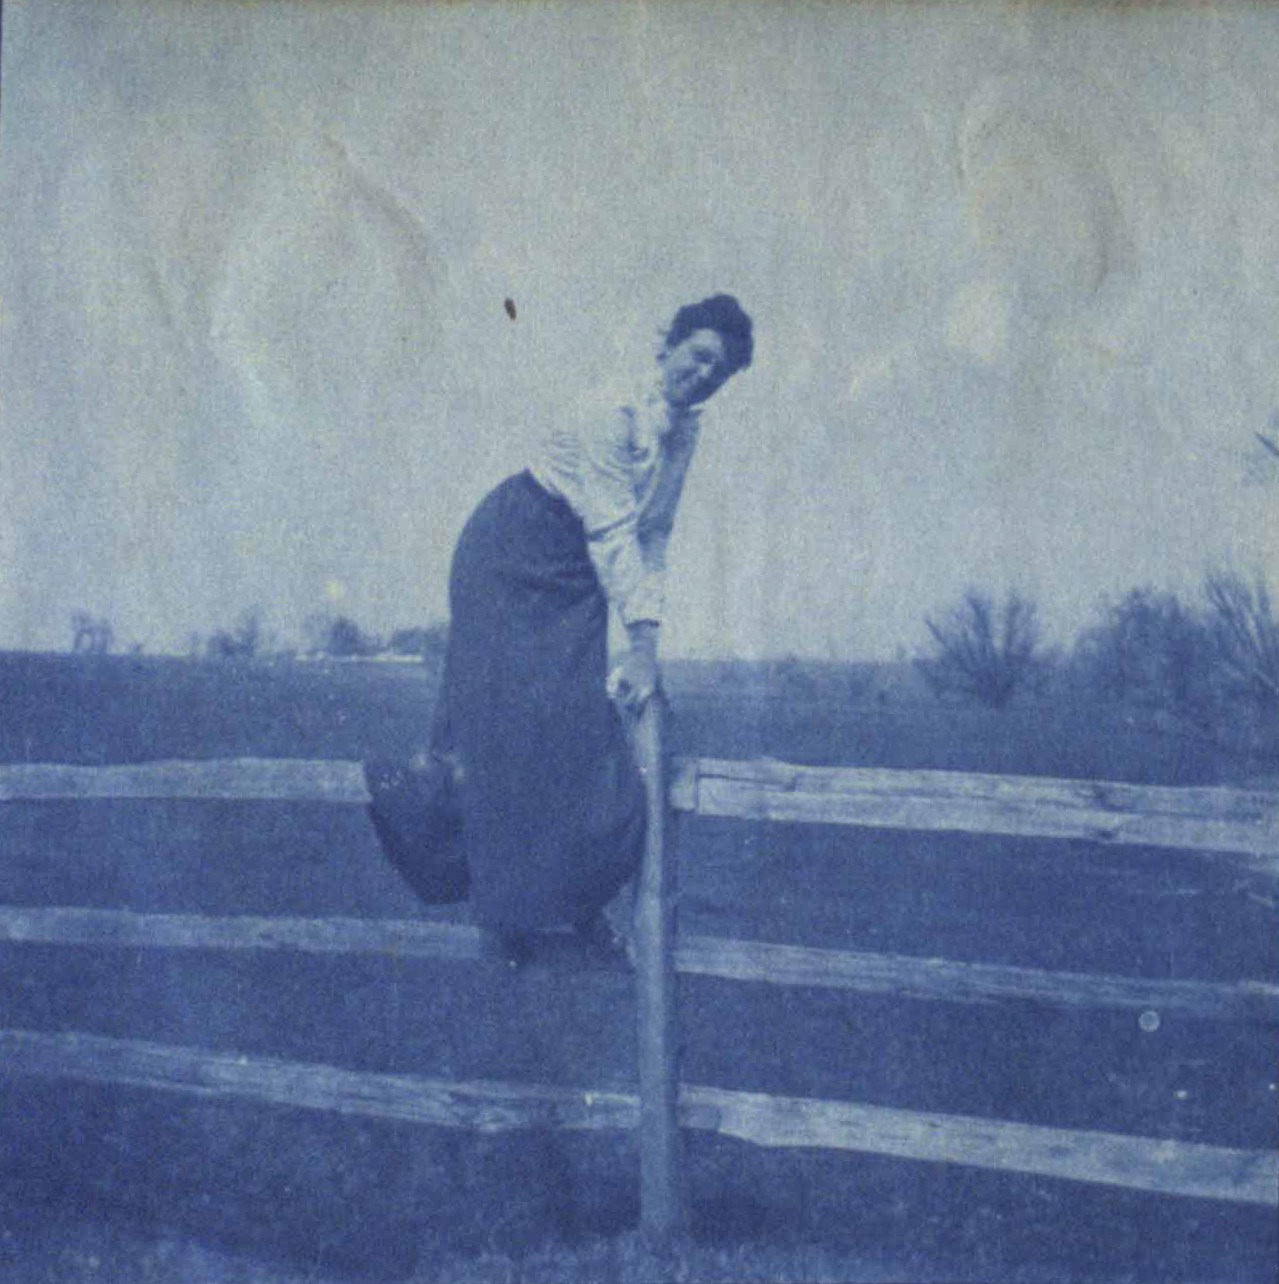 Student climbing a fence